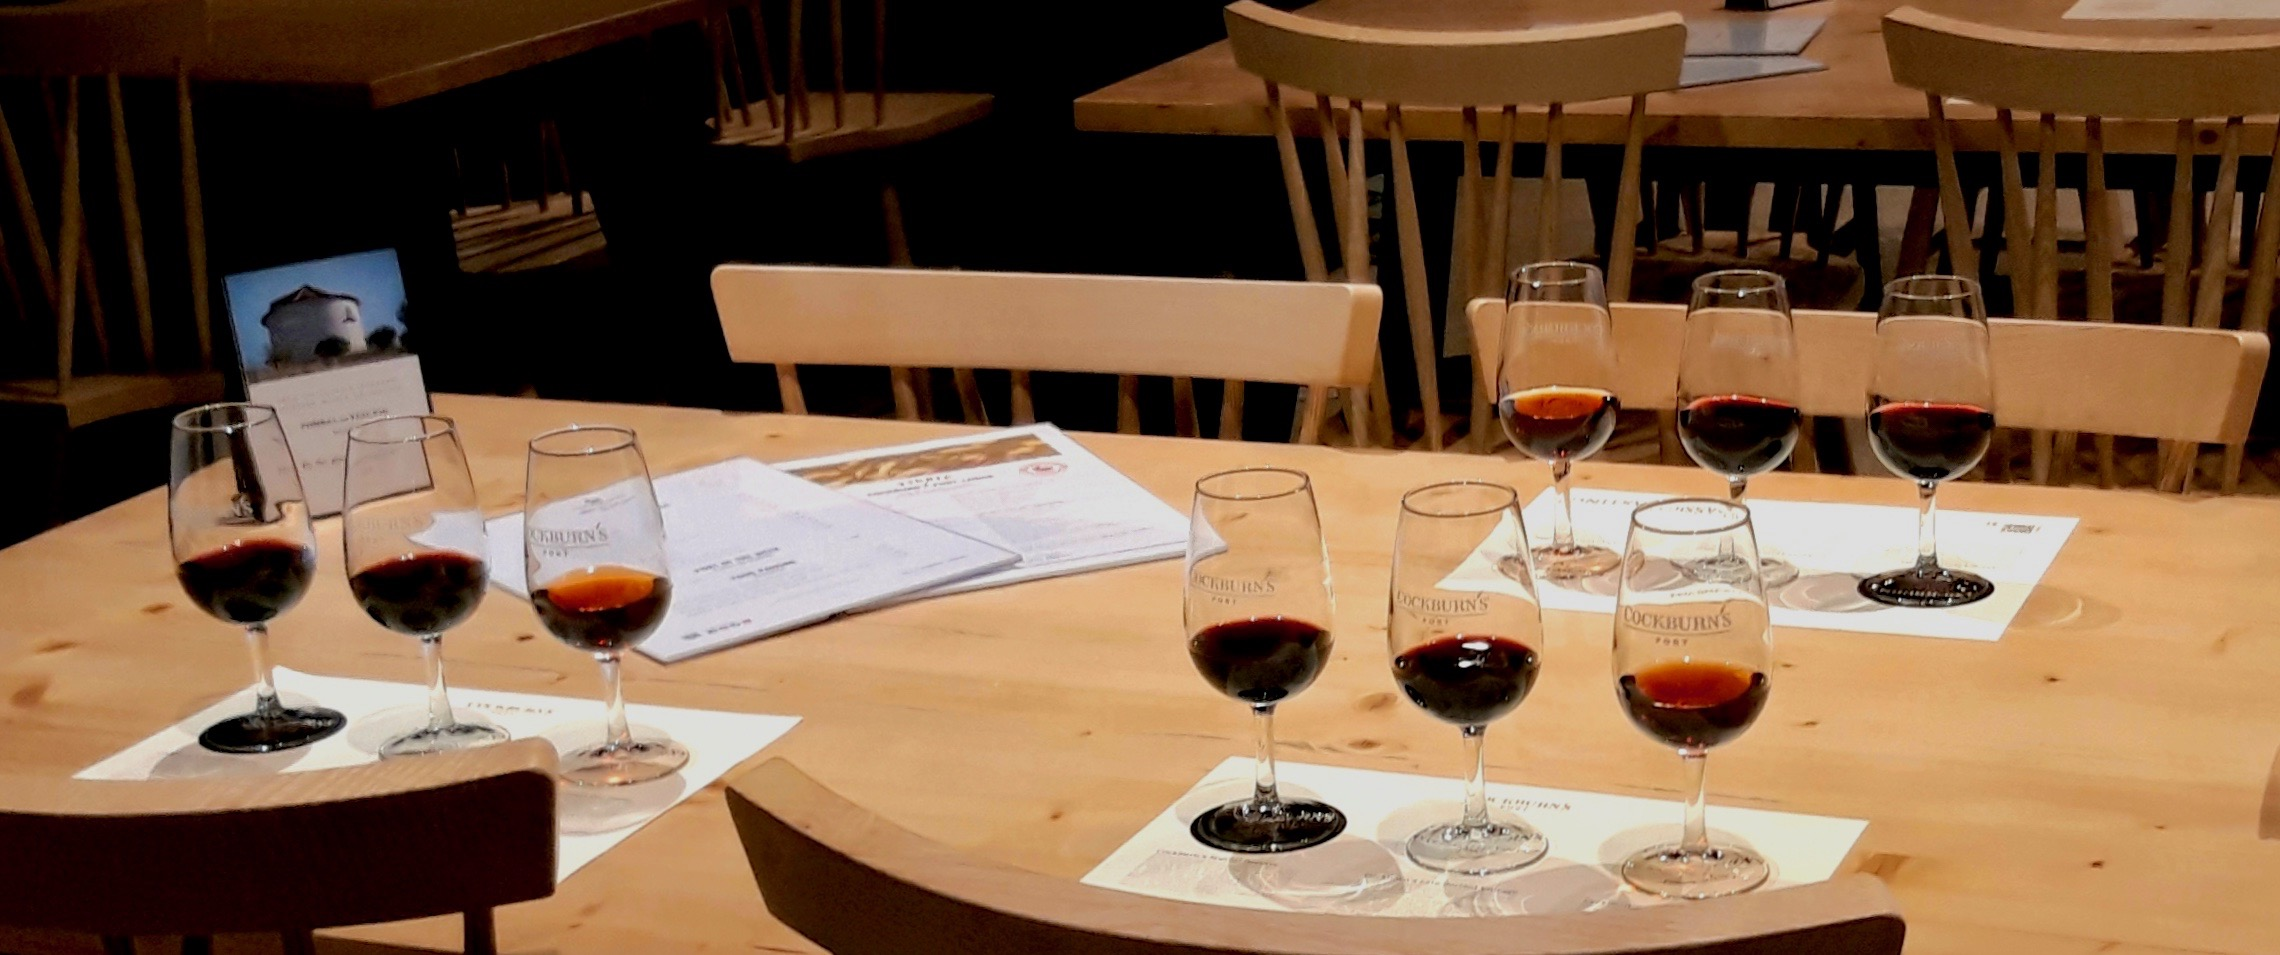 A table set with port wine tastings for three